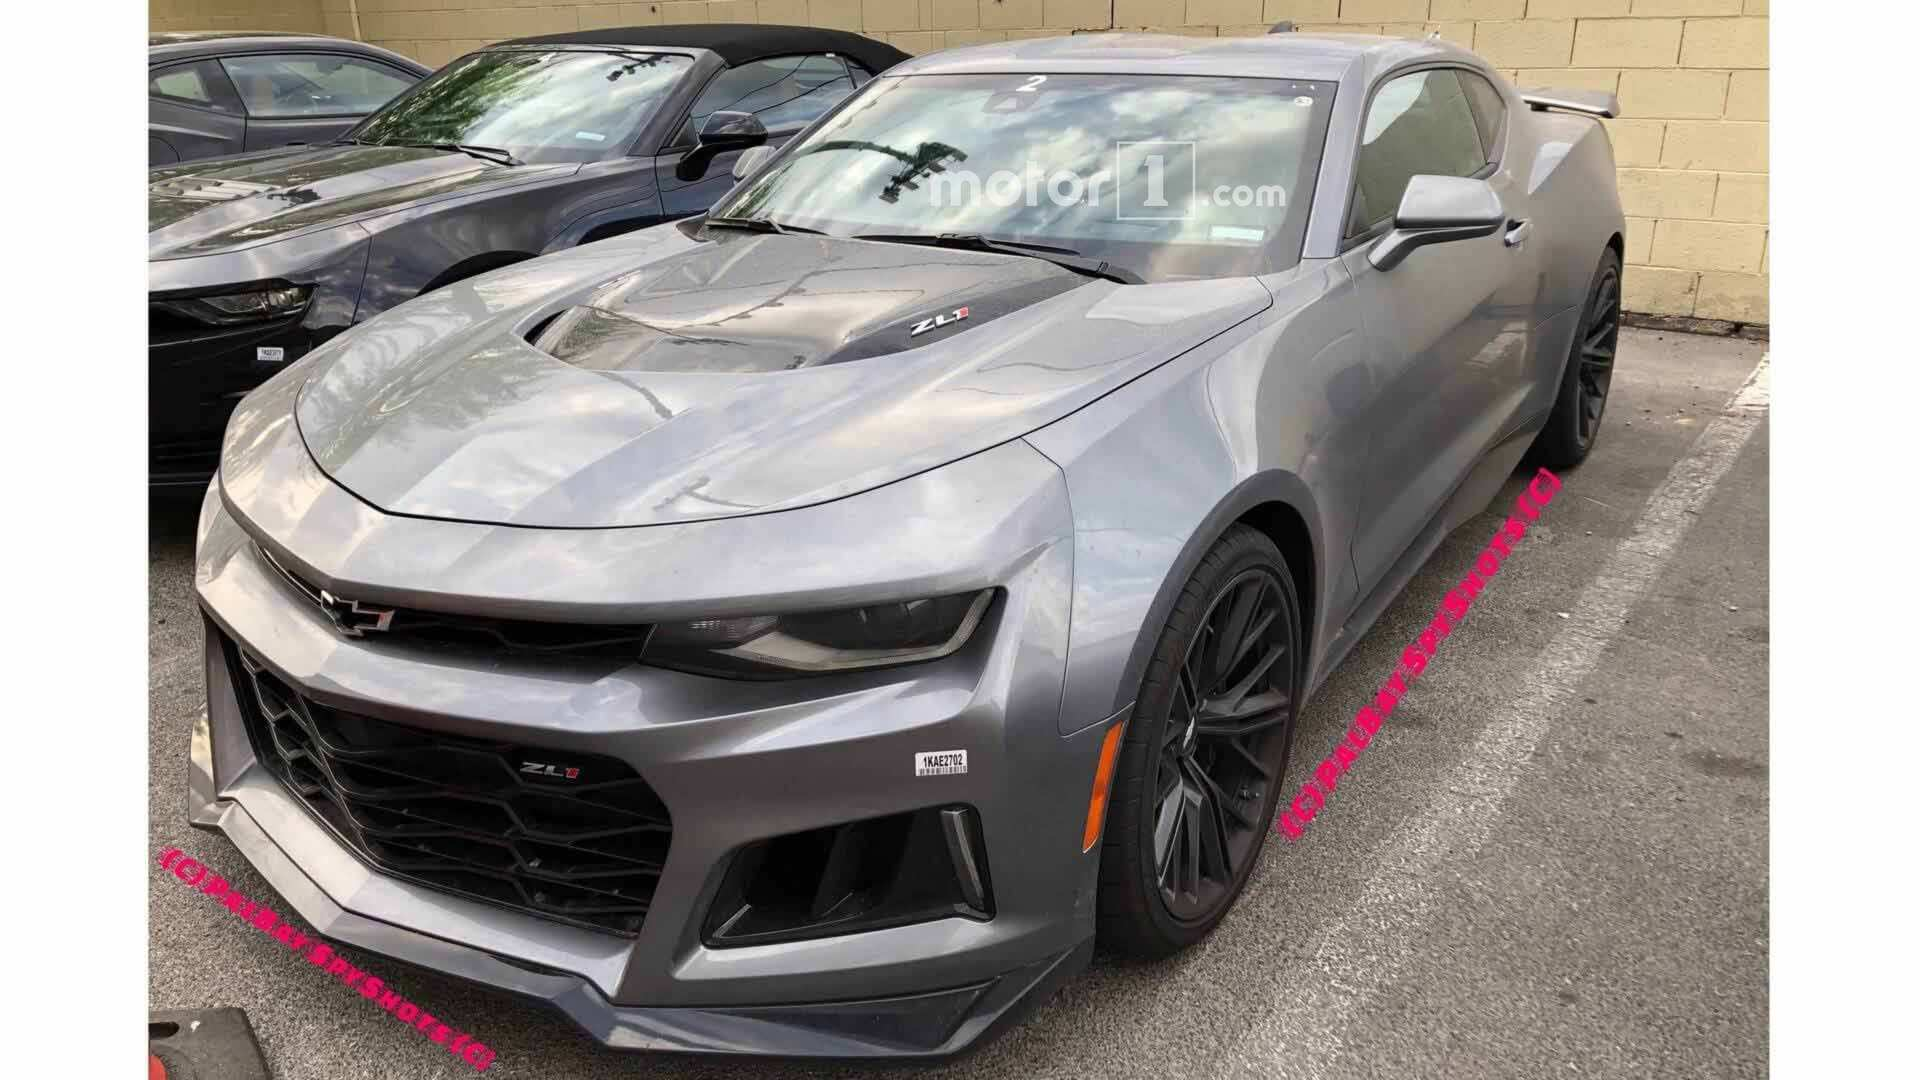 31 Best Review 2019 Chevy Camaro Competition Arrival Rumors with 2019 Chevy Camaro Competition Arrival